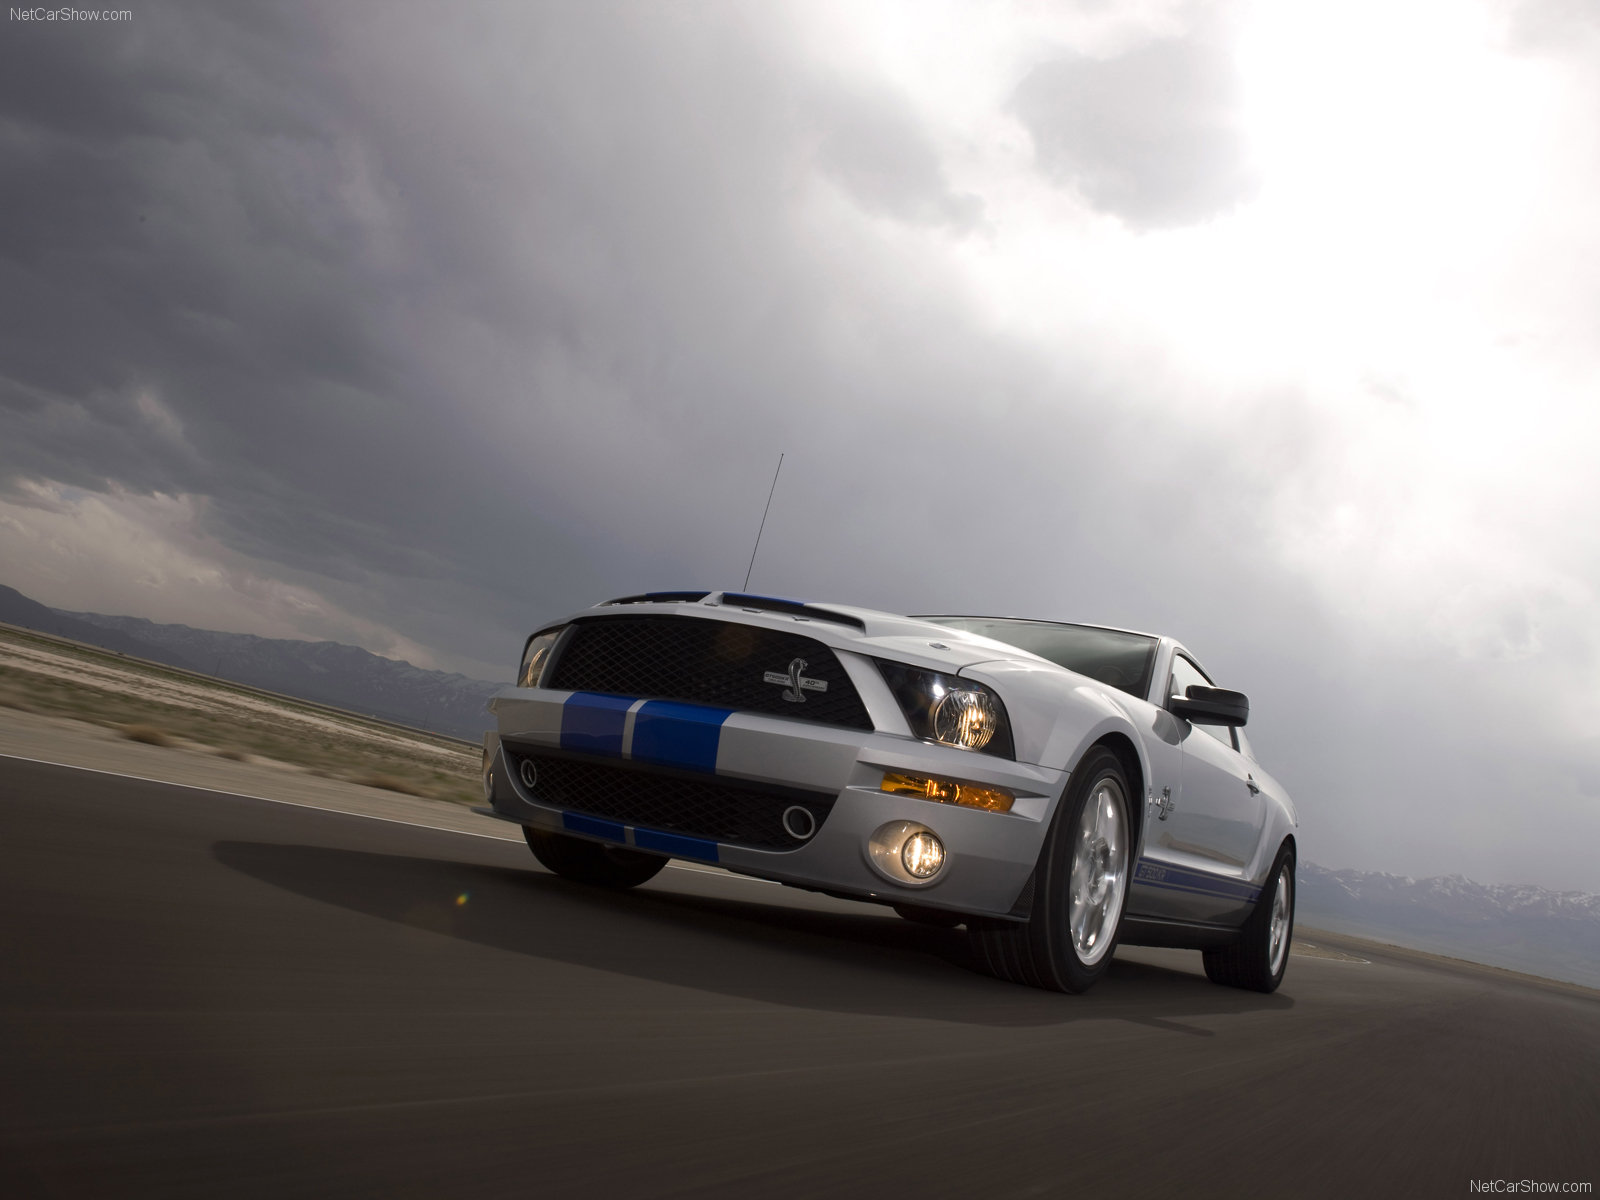 Ford Mustang Shelby GT500KR photo 54436